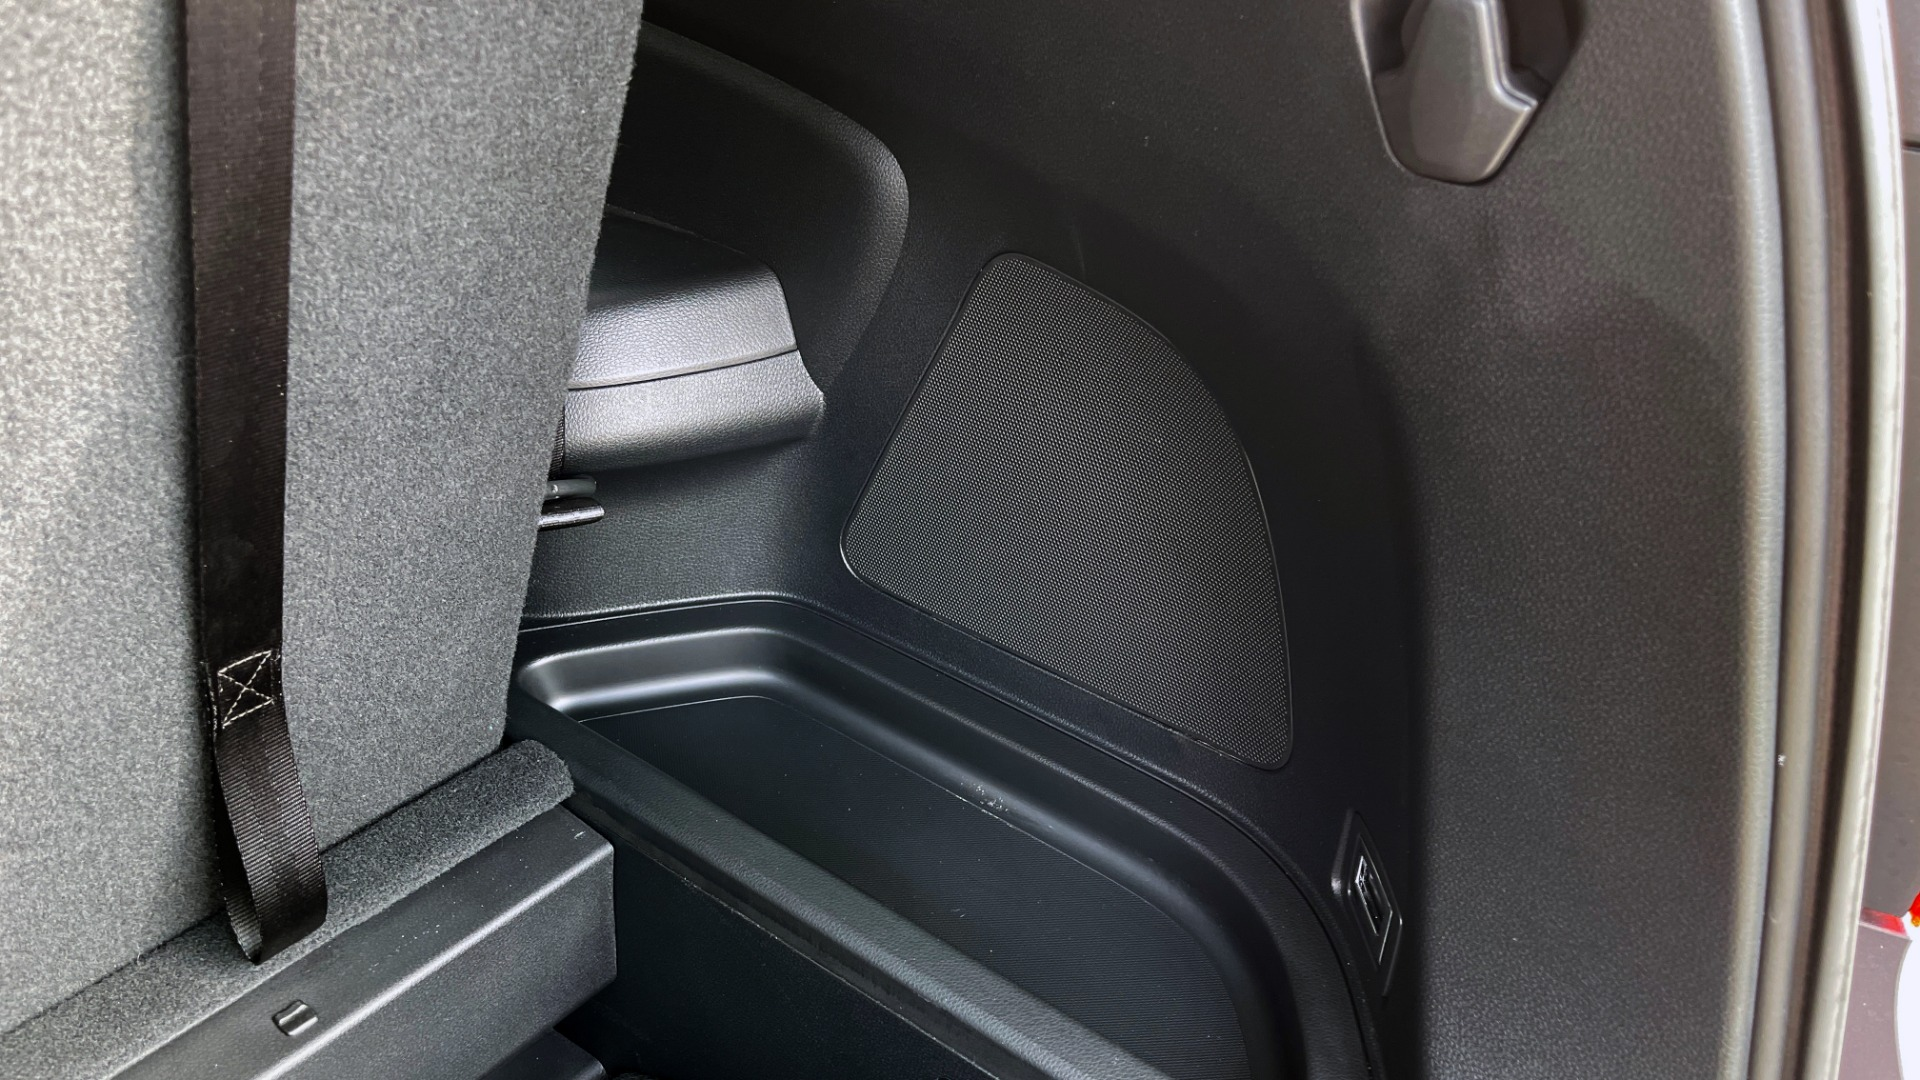 Used 2021 Honda PILOT SE / 3.5L V6 / 9-SPD AUTO / SUNROOF / 3-ROW / REARVIEW for sale $38,795 at Formula Imports in Charlotte NC 28227 20